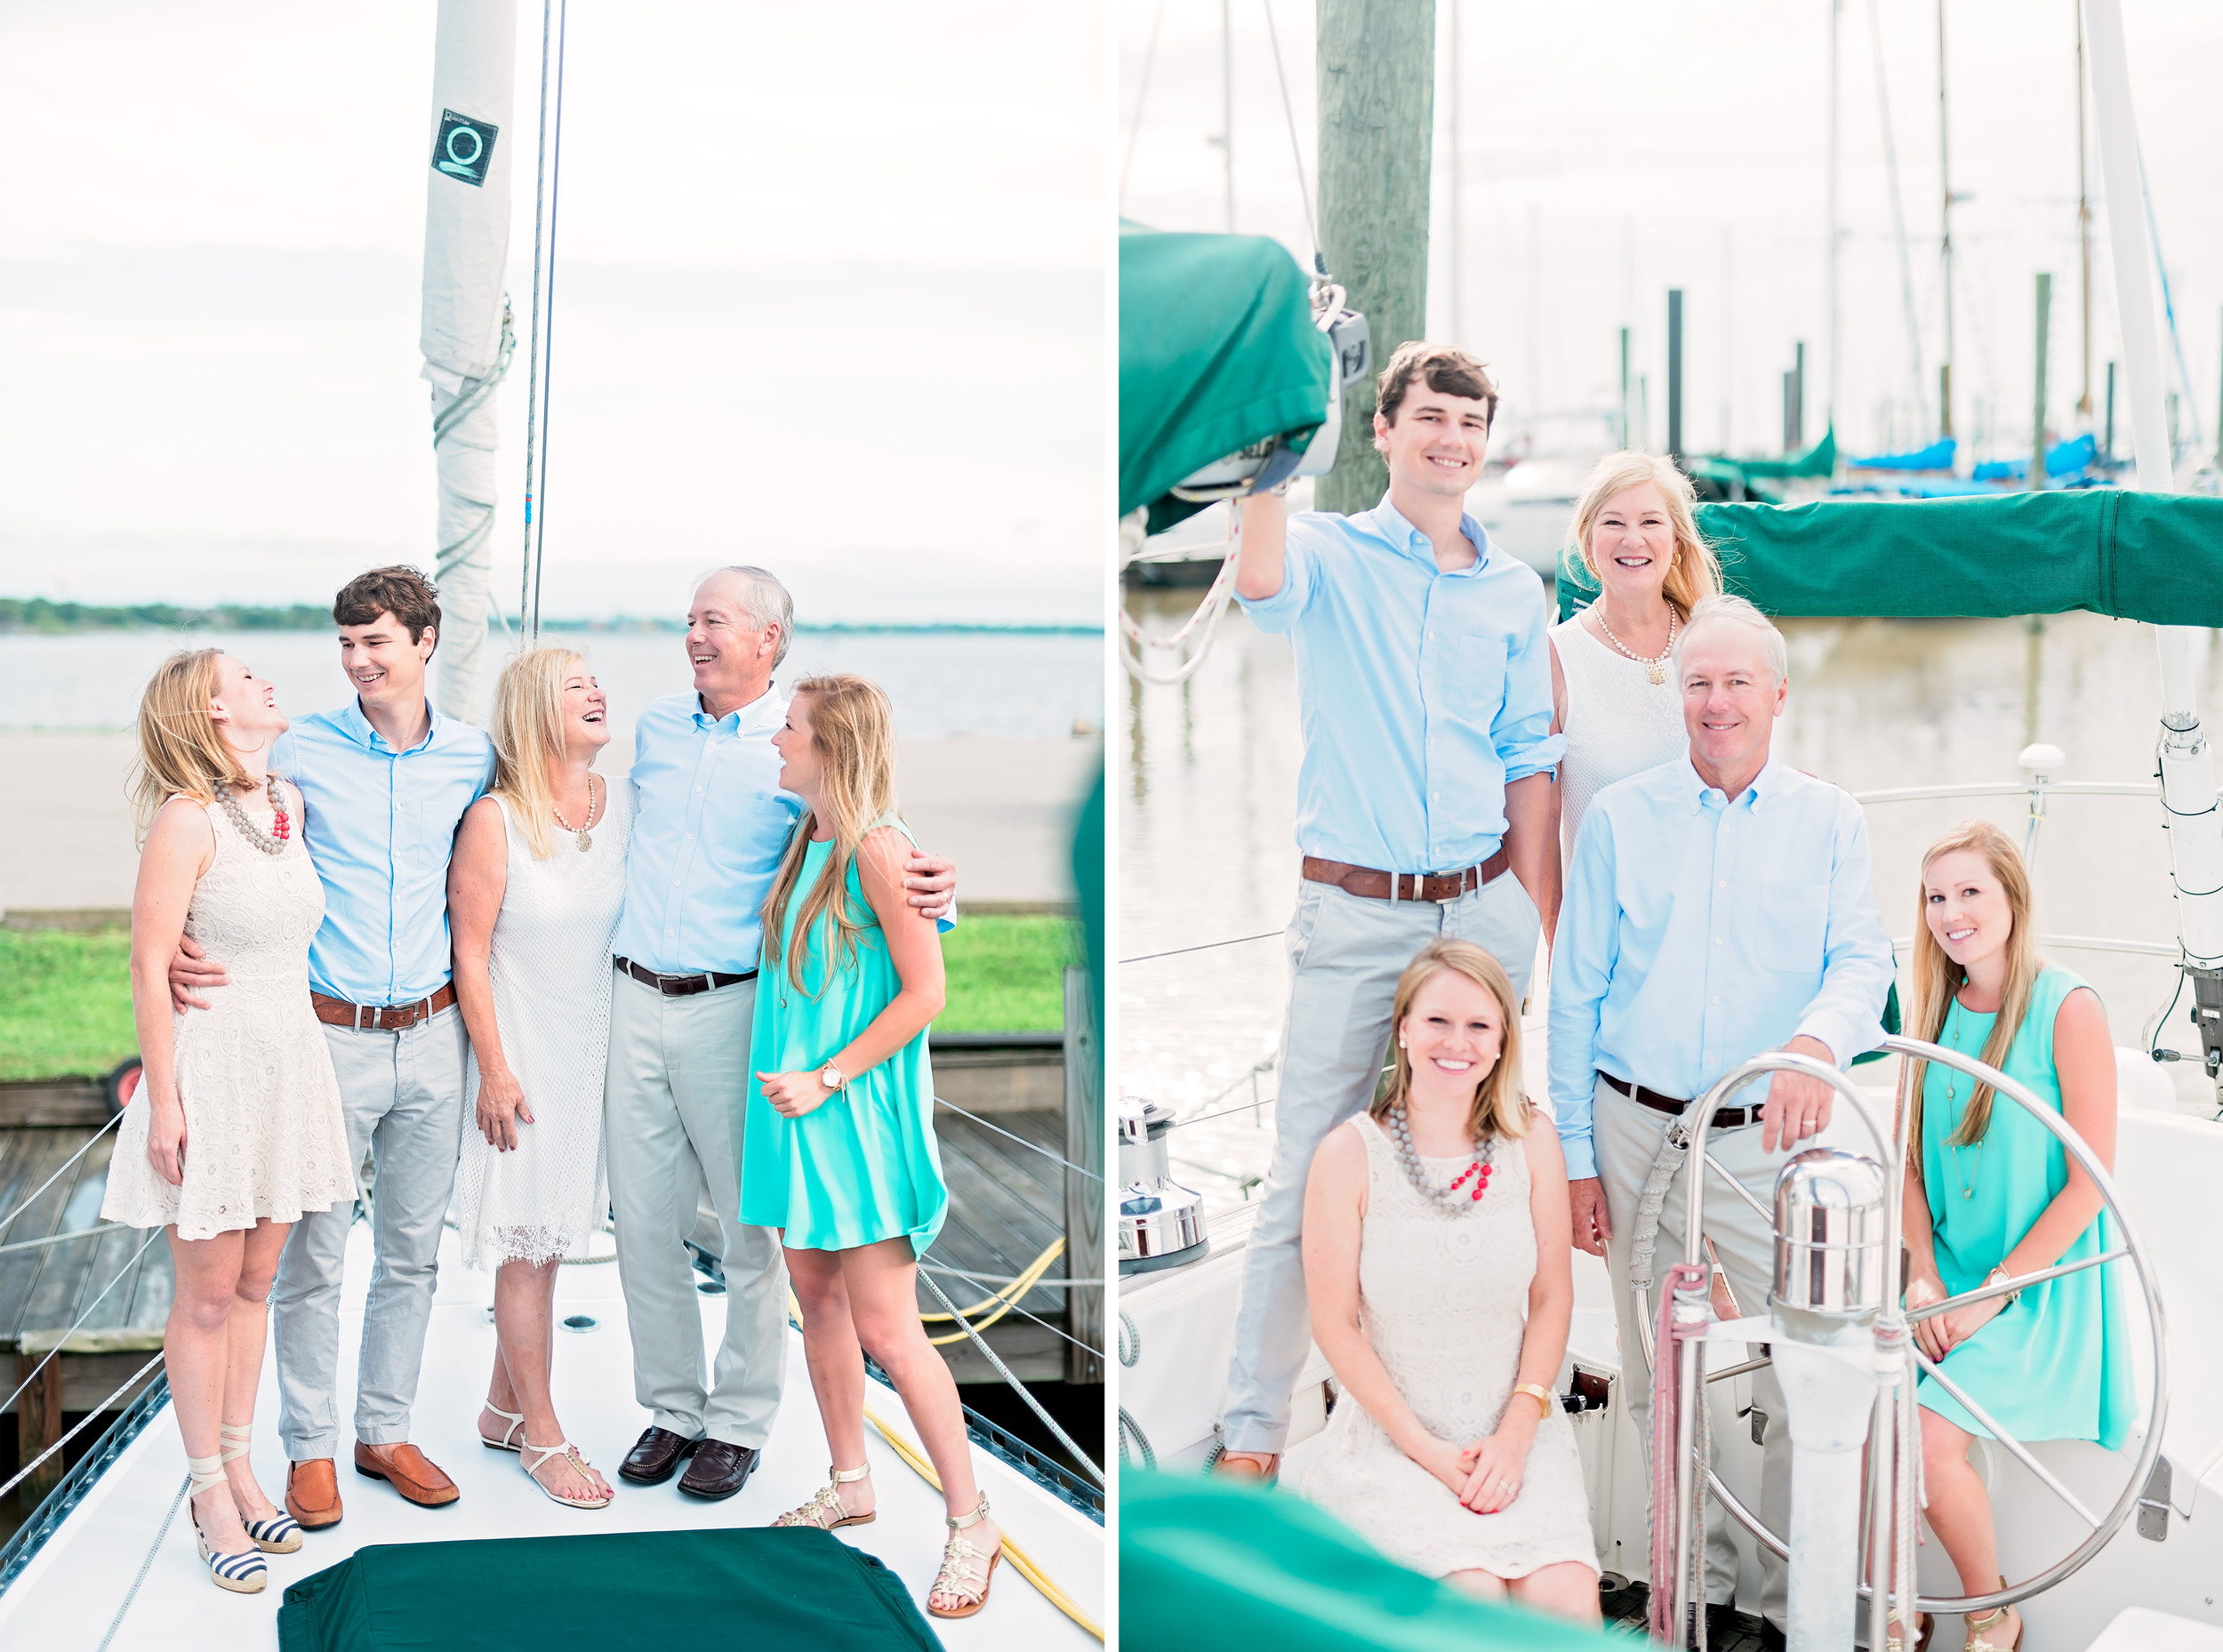 Keenan Family- Pharris Photography- Texas Photographer- Houston- Family Session- Family Portraits- Nautical Theme